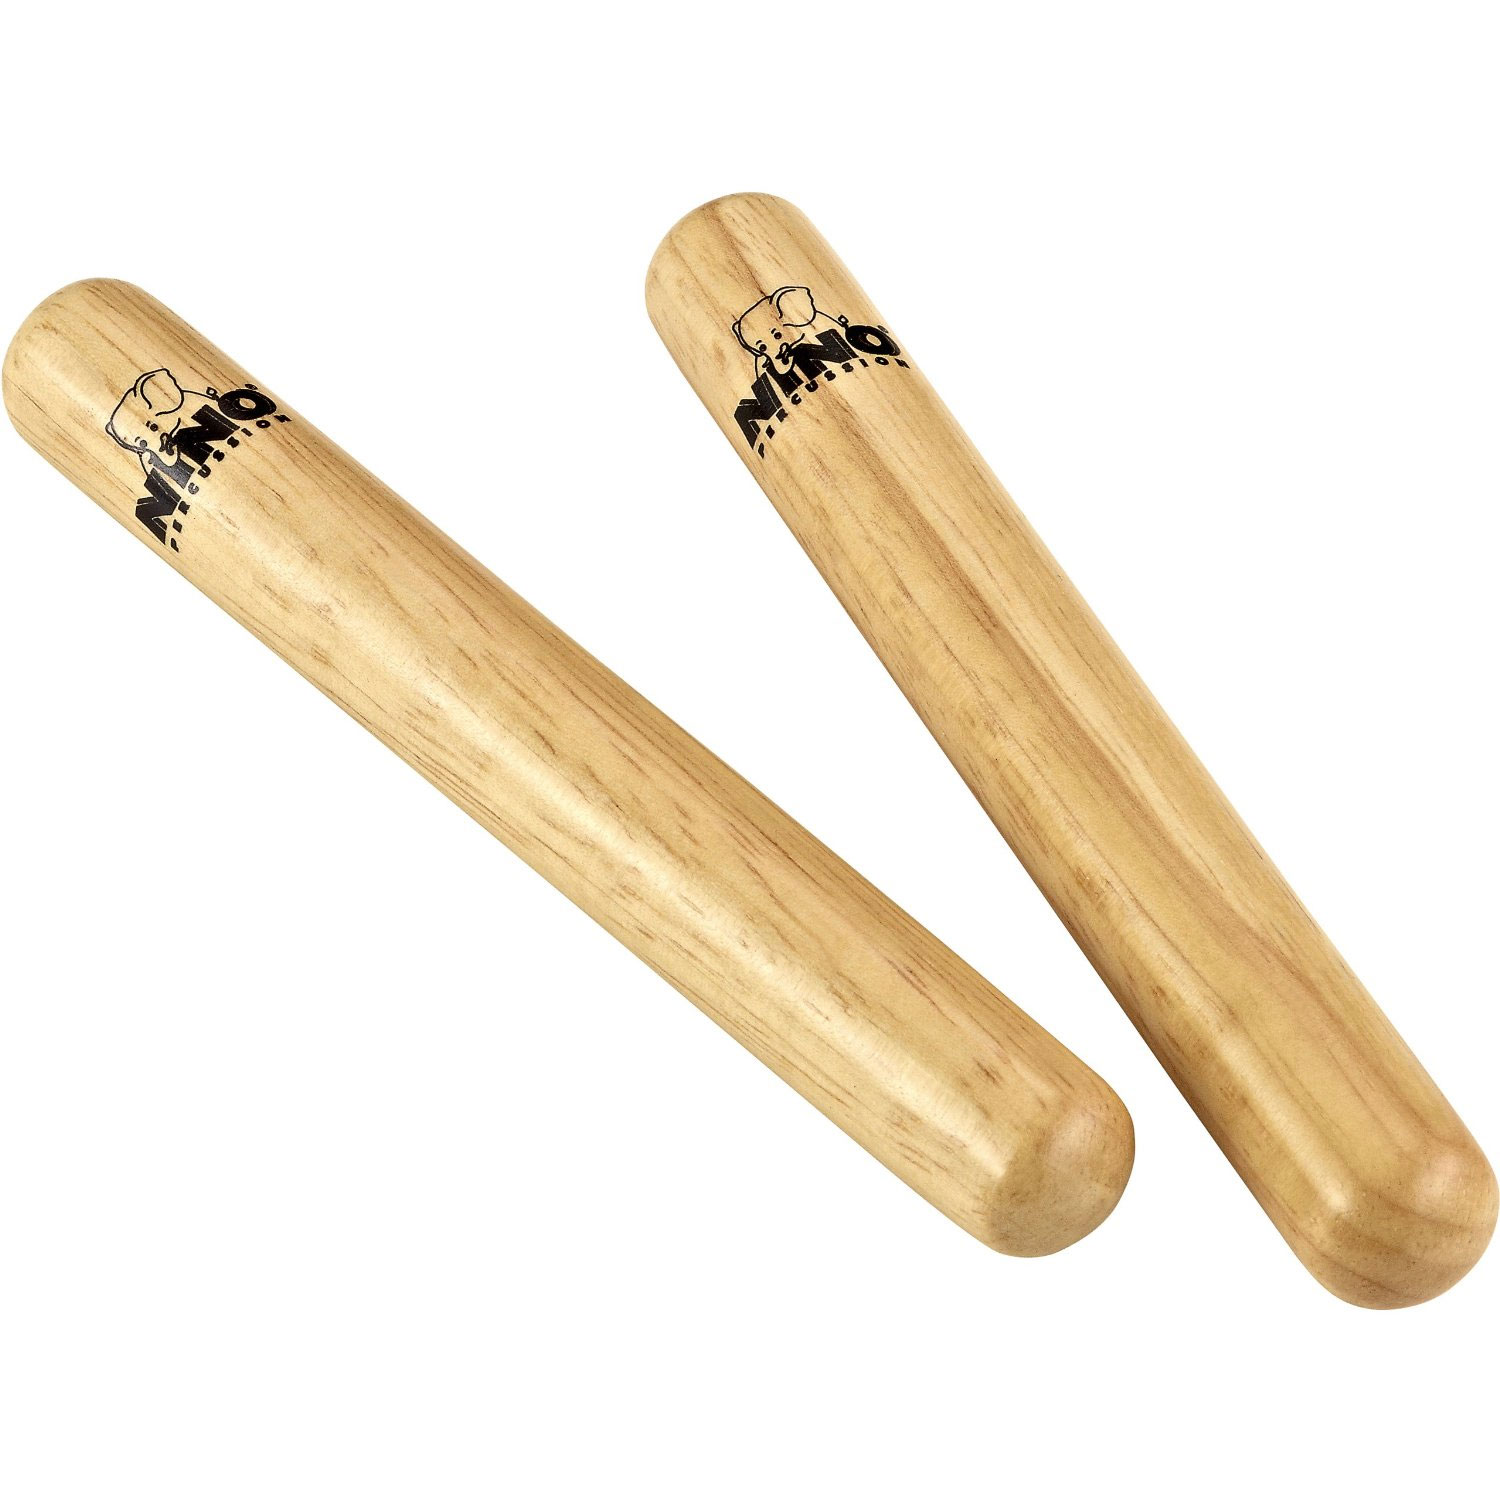 Meinl Nino Regular Wood Claves